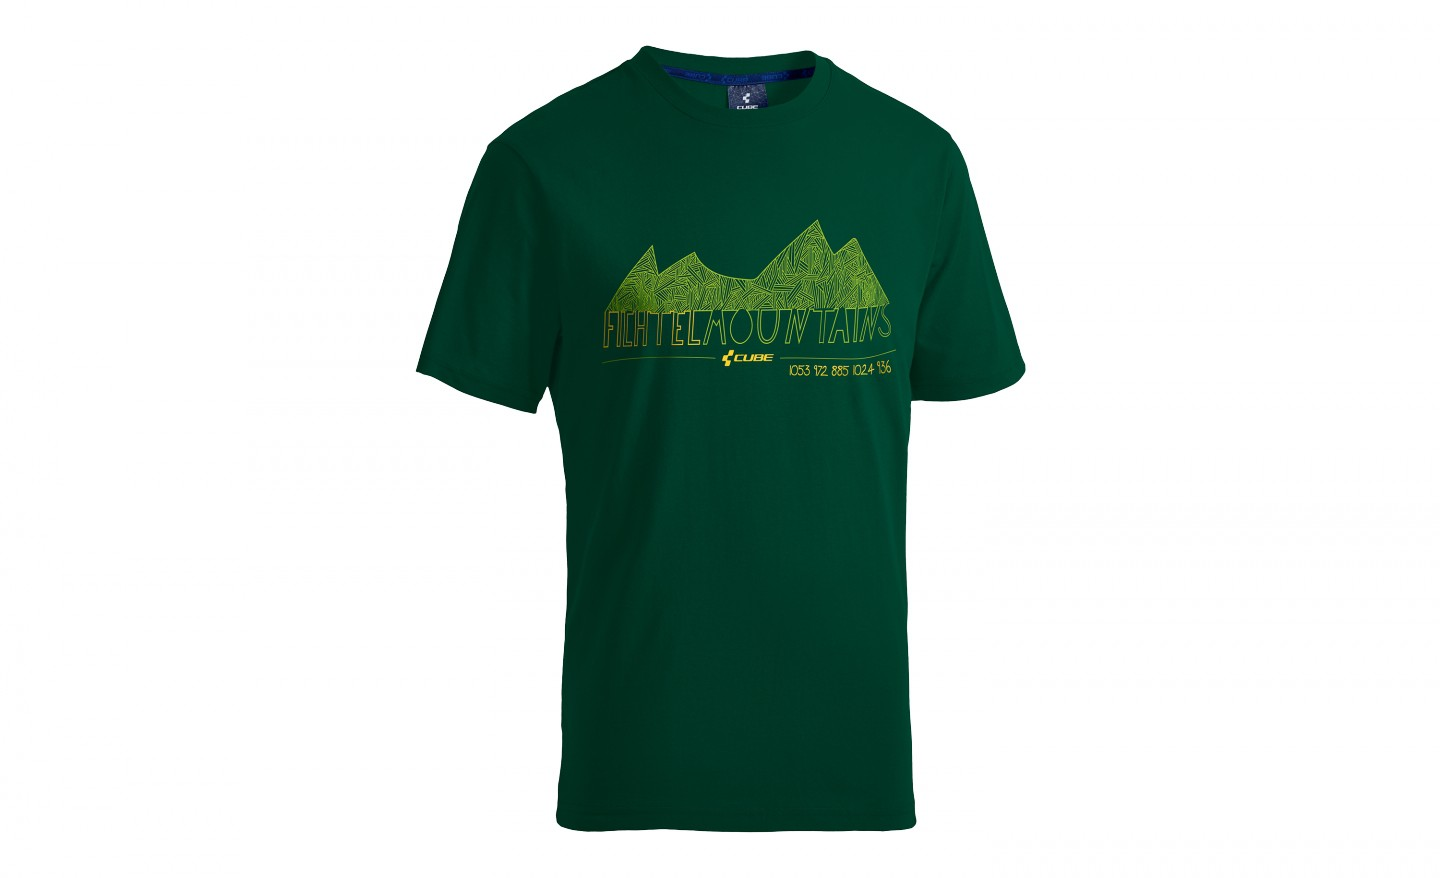 CUBE JUNIOR T-Shirt Fichtelmountains